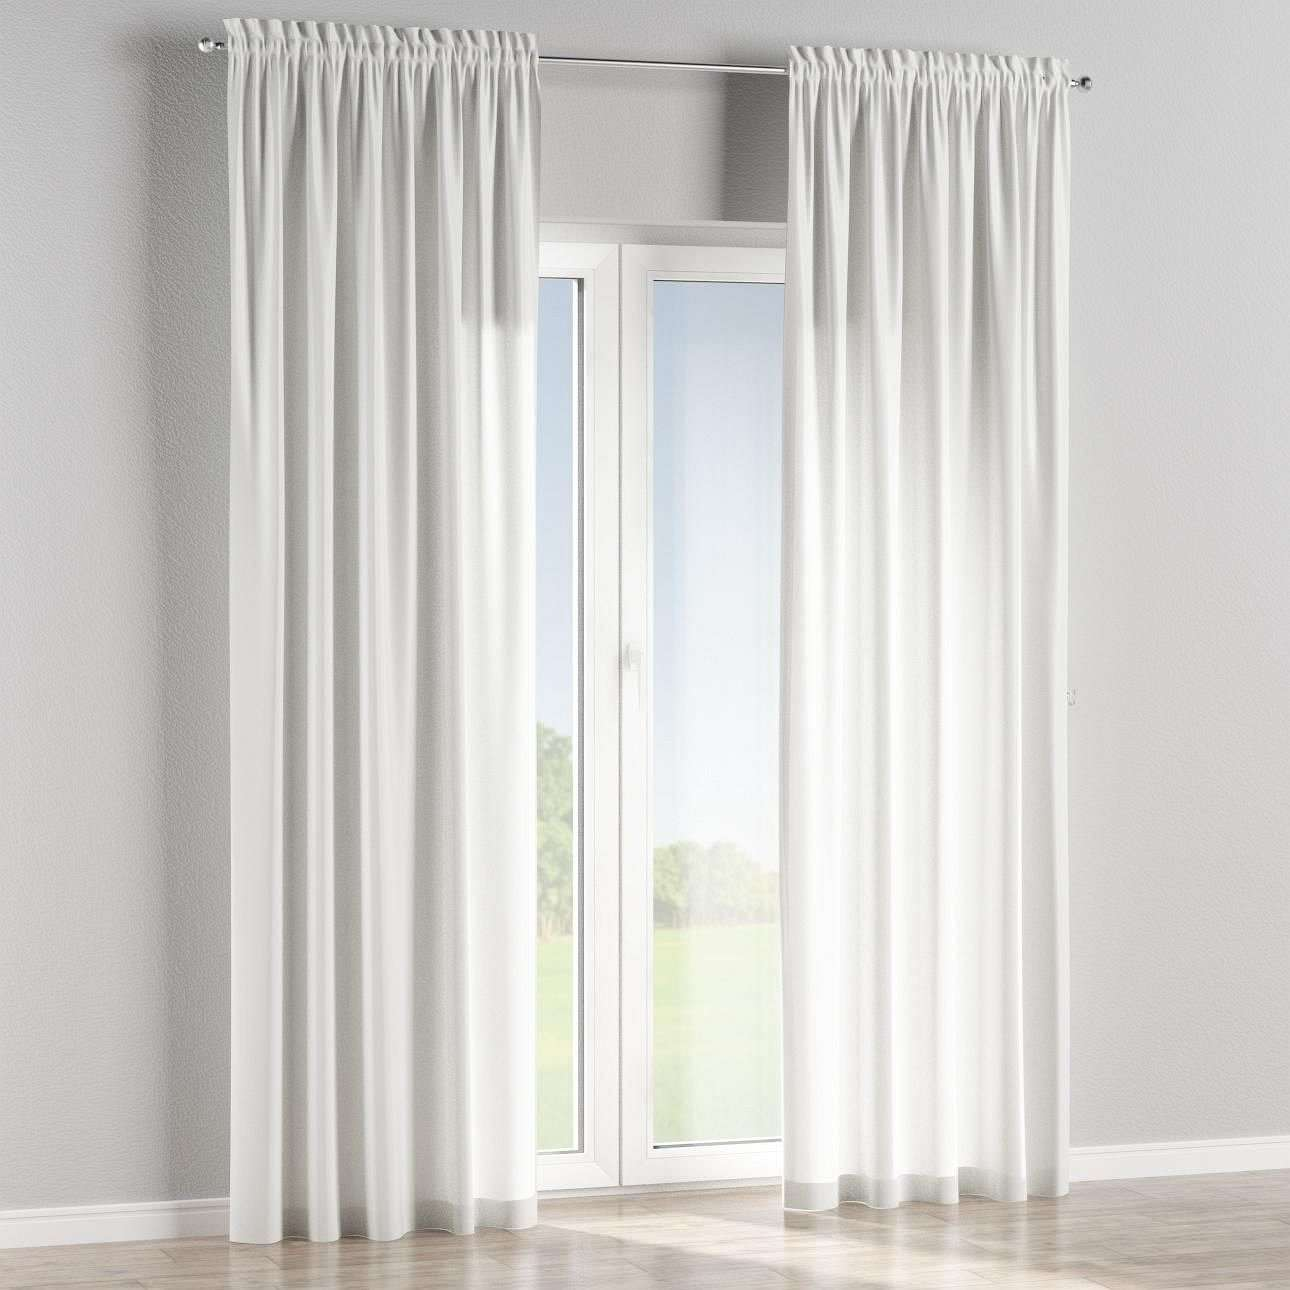 Slot and frill curtains in collection Rustica, fabric: 140-59